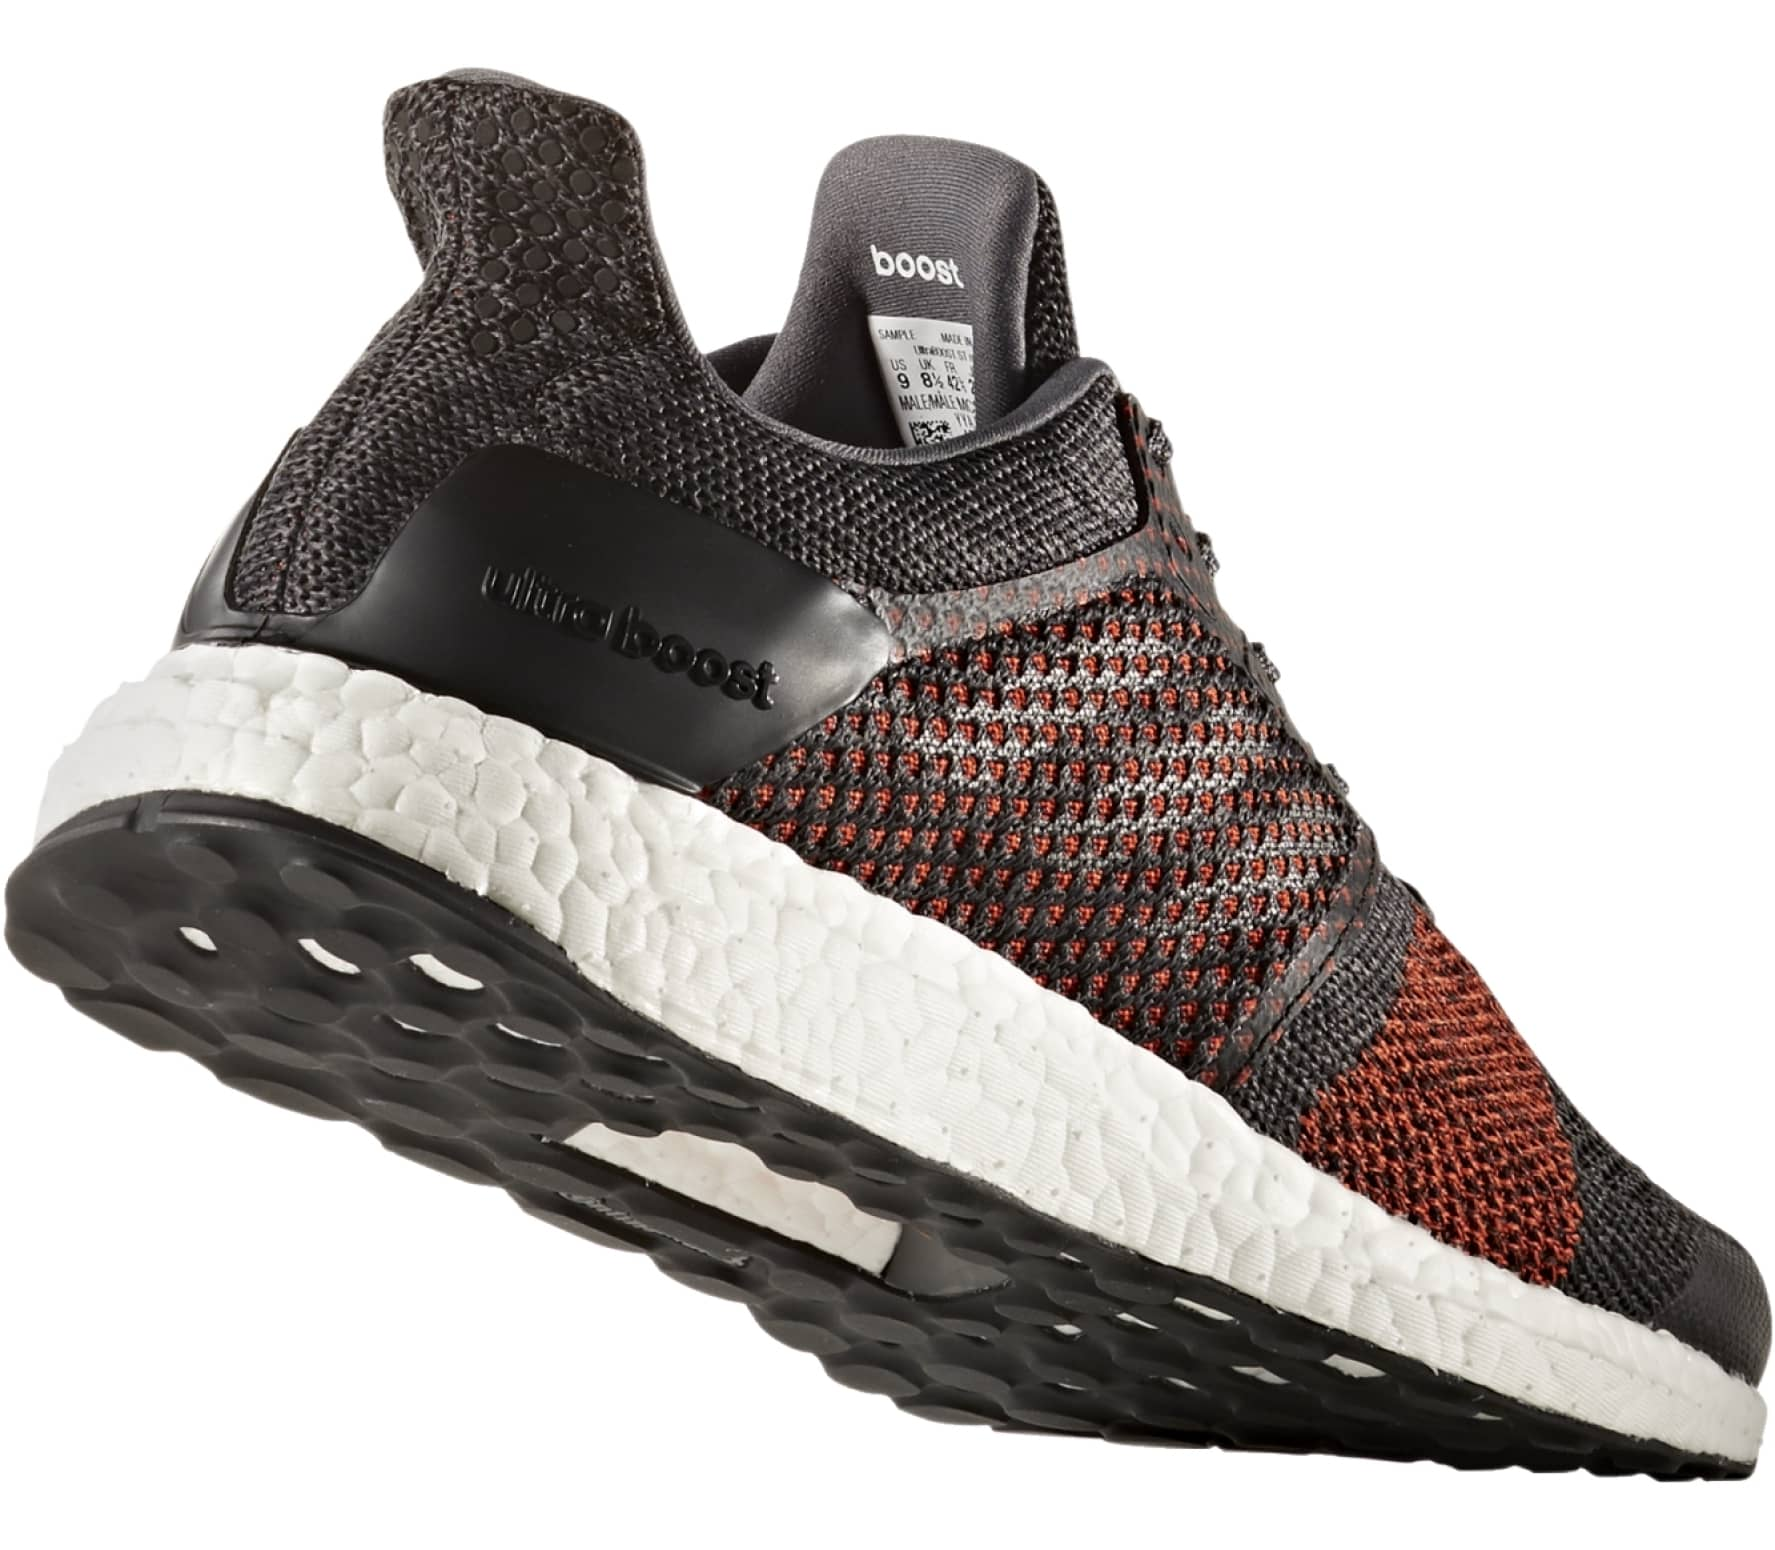 47a8cf1c6 ... coupon code adidas ultra boost st mens running shoes dark red black  9bdf2 0b99c